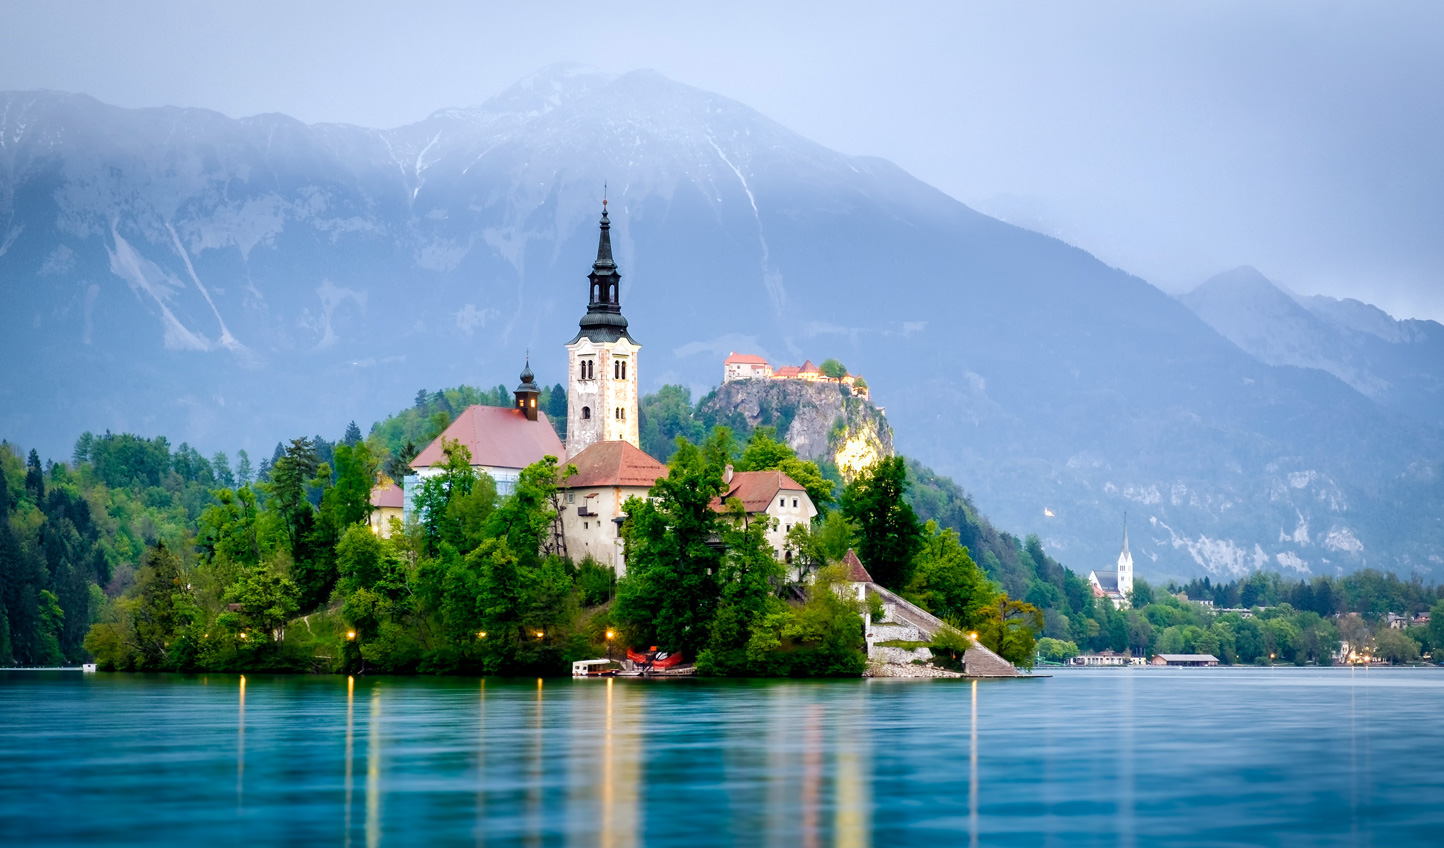 Postcard-perfect sights on Lake Bled